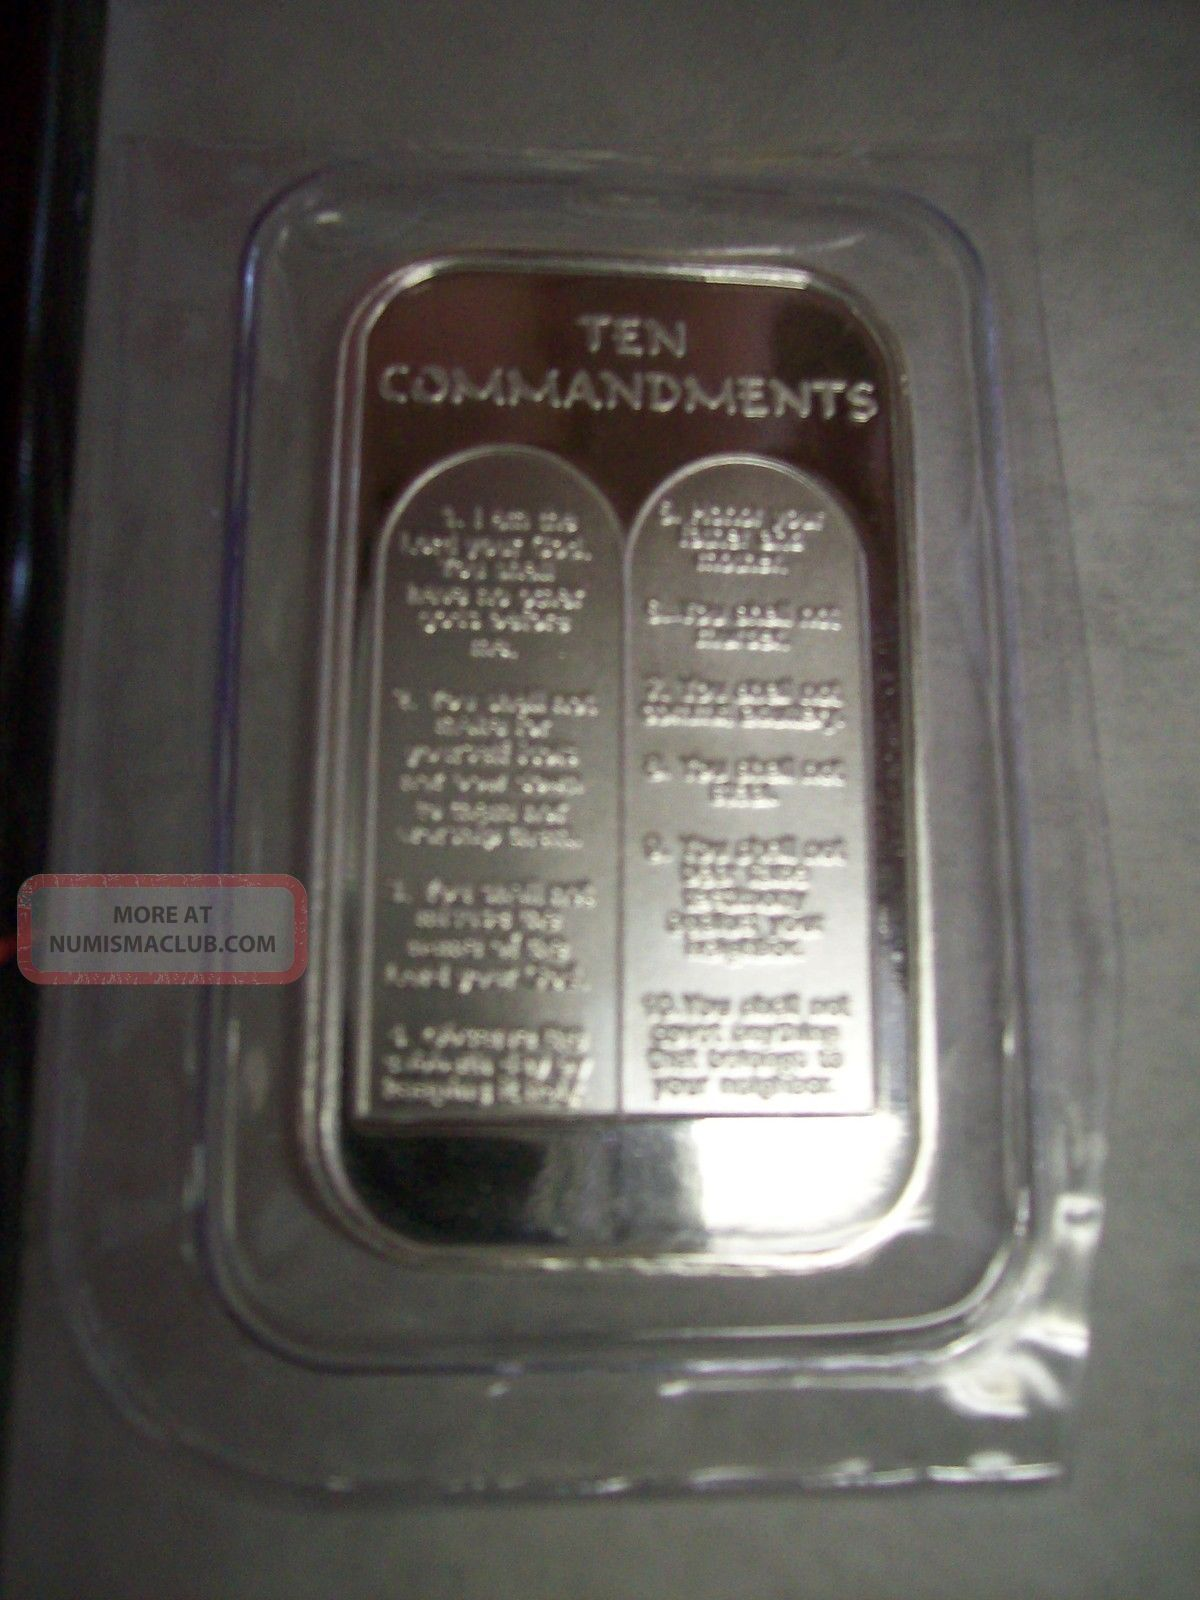 1 Oz Silver Ten 10 Commandments 999 Fine Silver Bullion